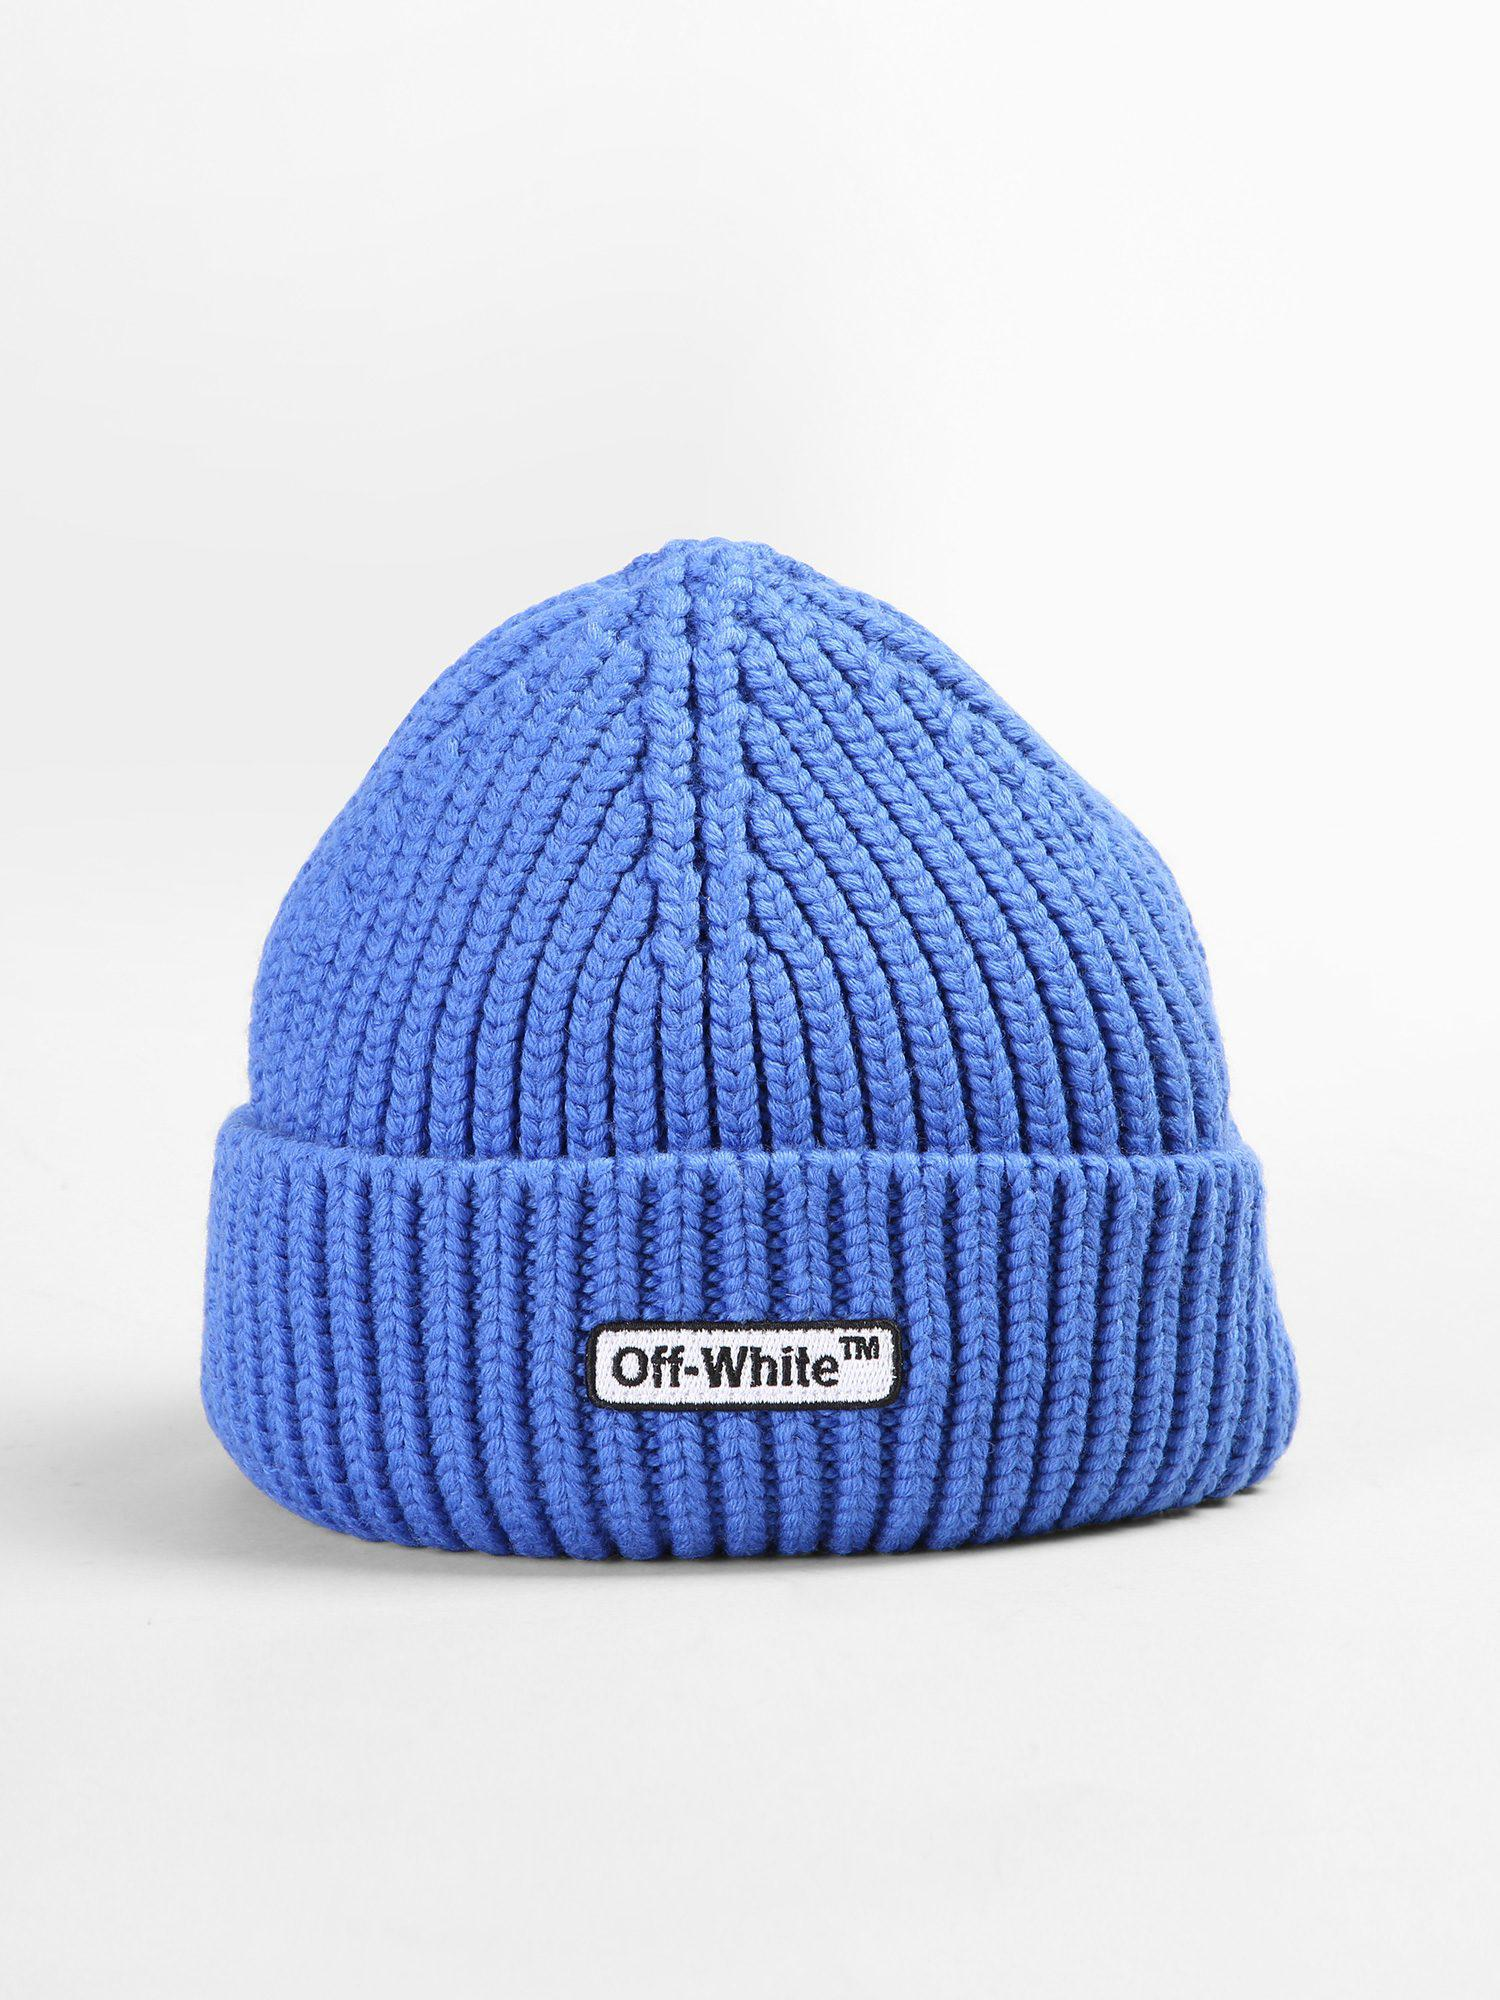 Lyst - Off-White c o Virgil Abloh Wool Beanie Hat in Blue for Men 8bc87f1ae89